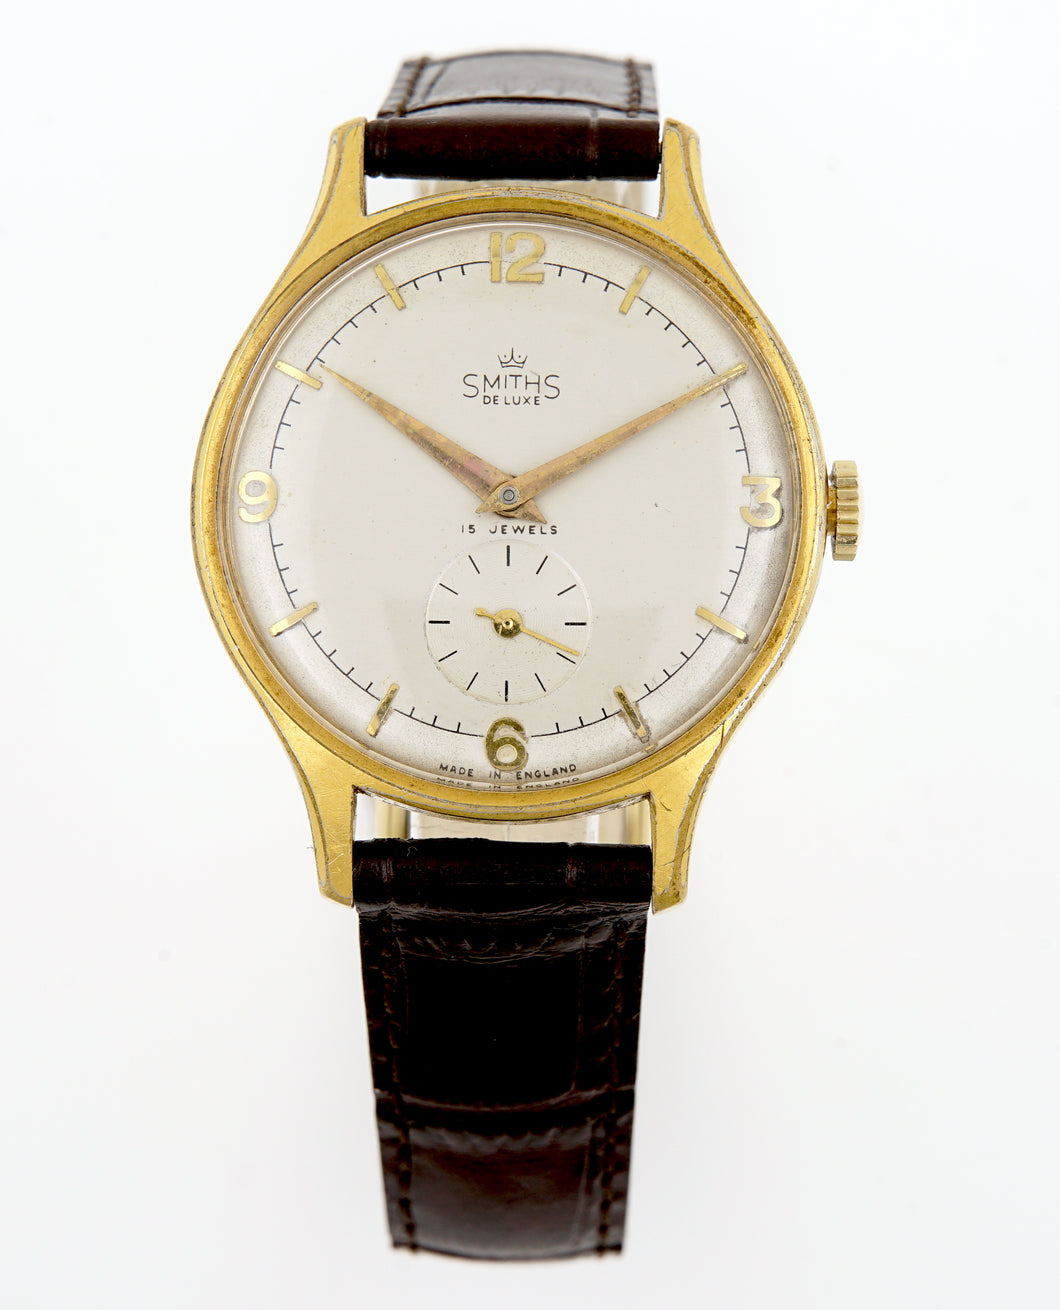 DELUXE SMITHS LARGE GENTS ENGLISH WRISTWATCH MODEL A325 A RARE MODEL c 1955/6 2